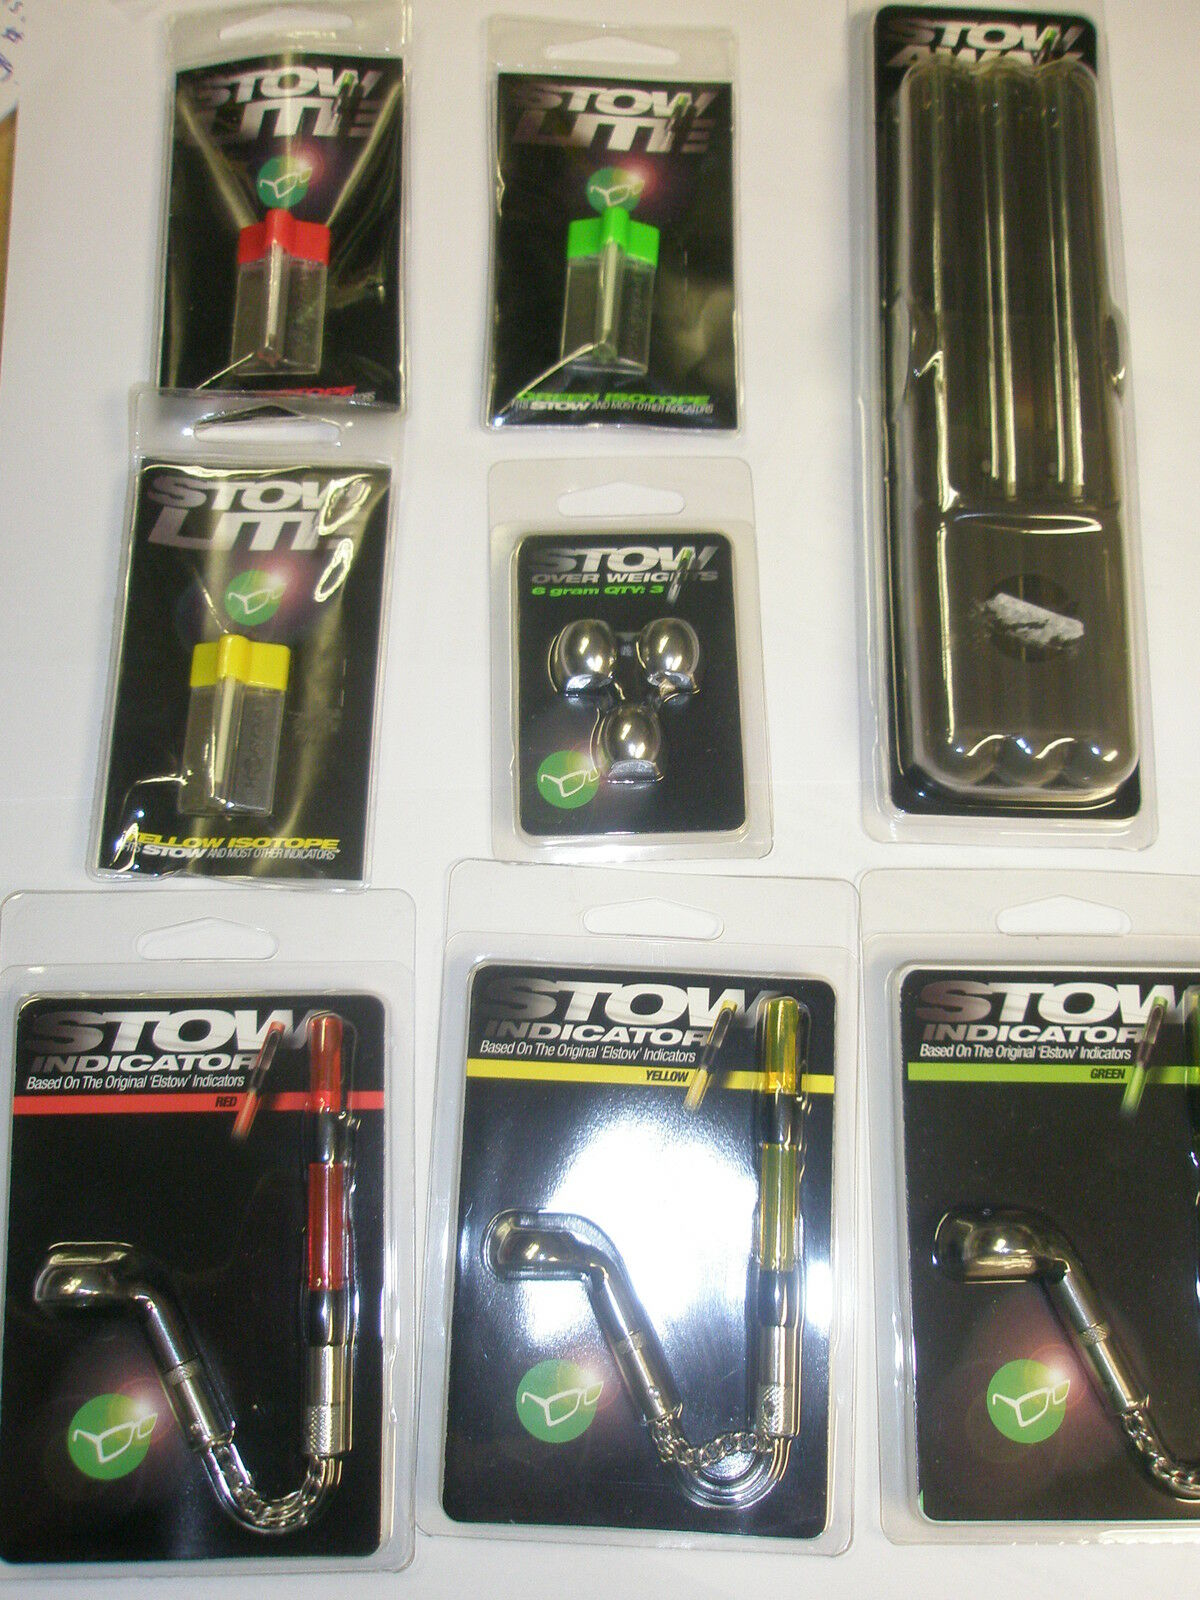 Korda NEW Stow Indicator GIFT SET 3 rod  setup Carp fishing  best sale